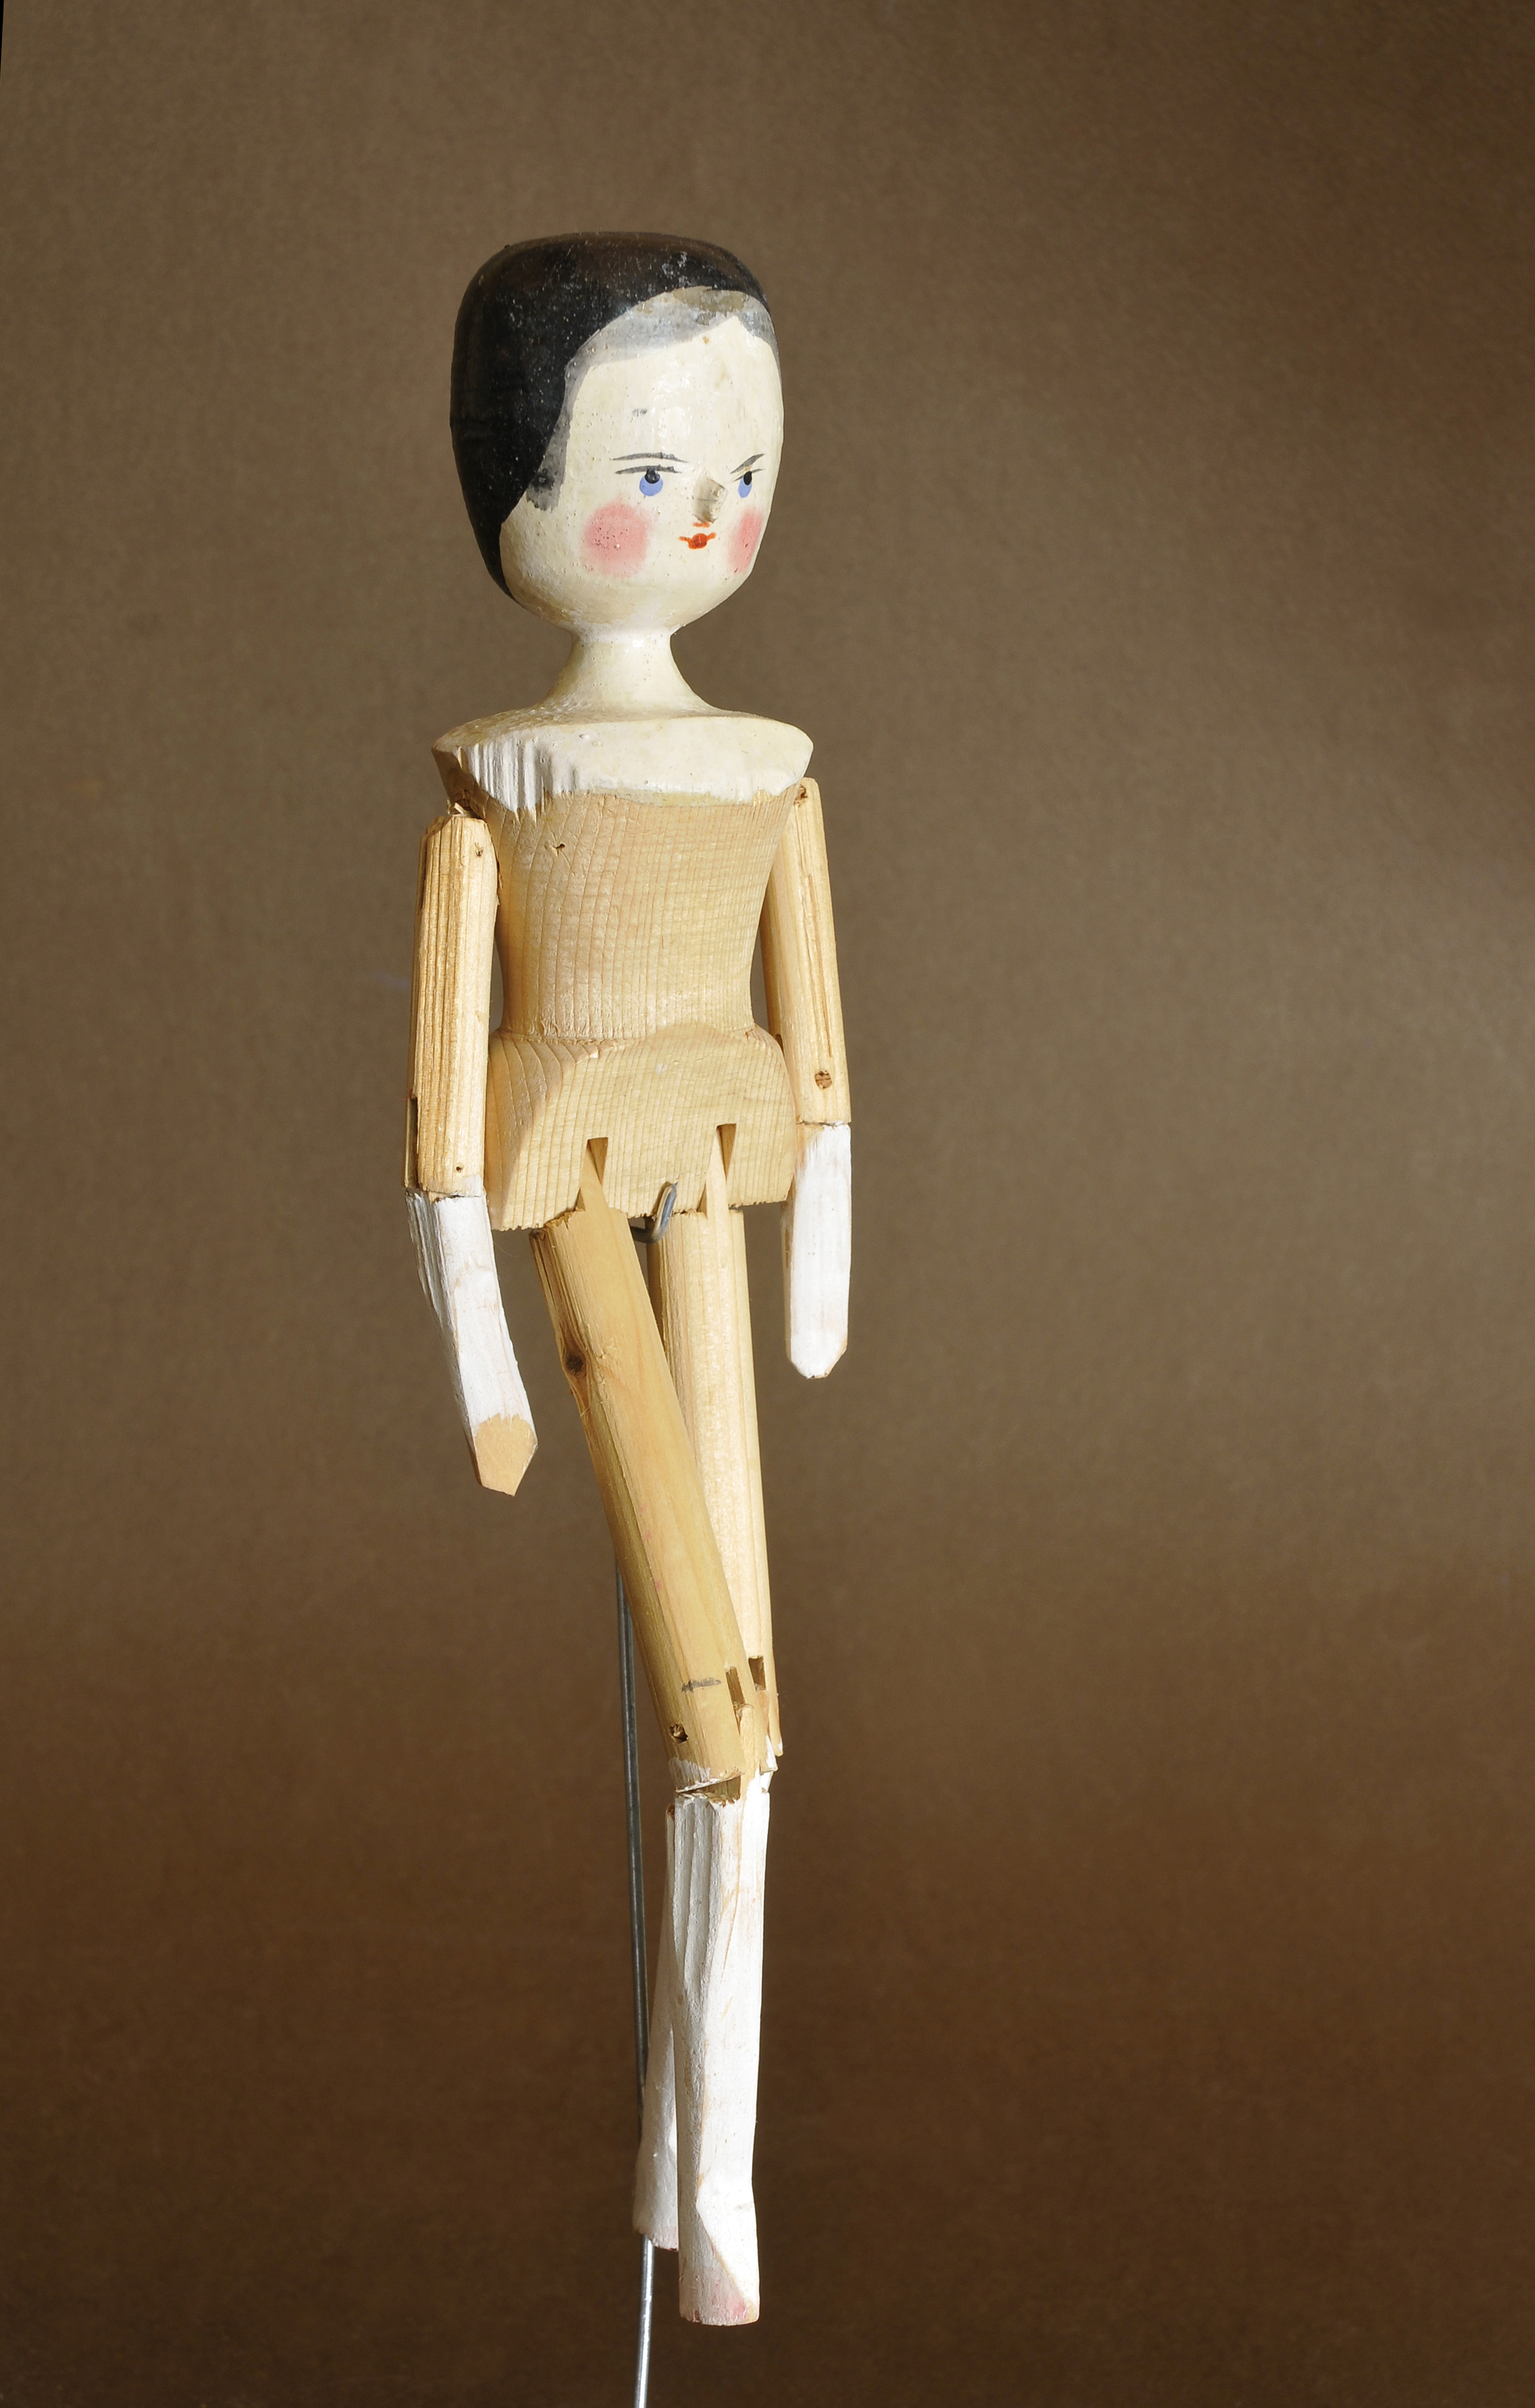 The Wooden Doll